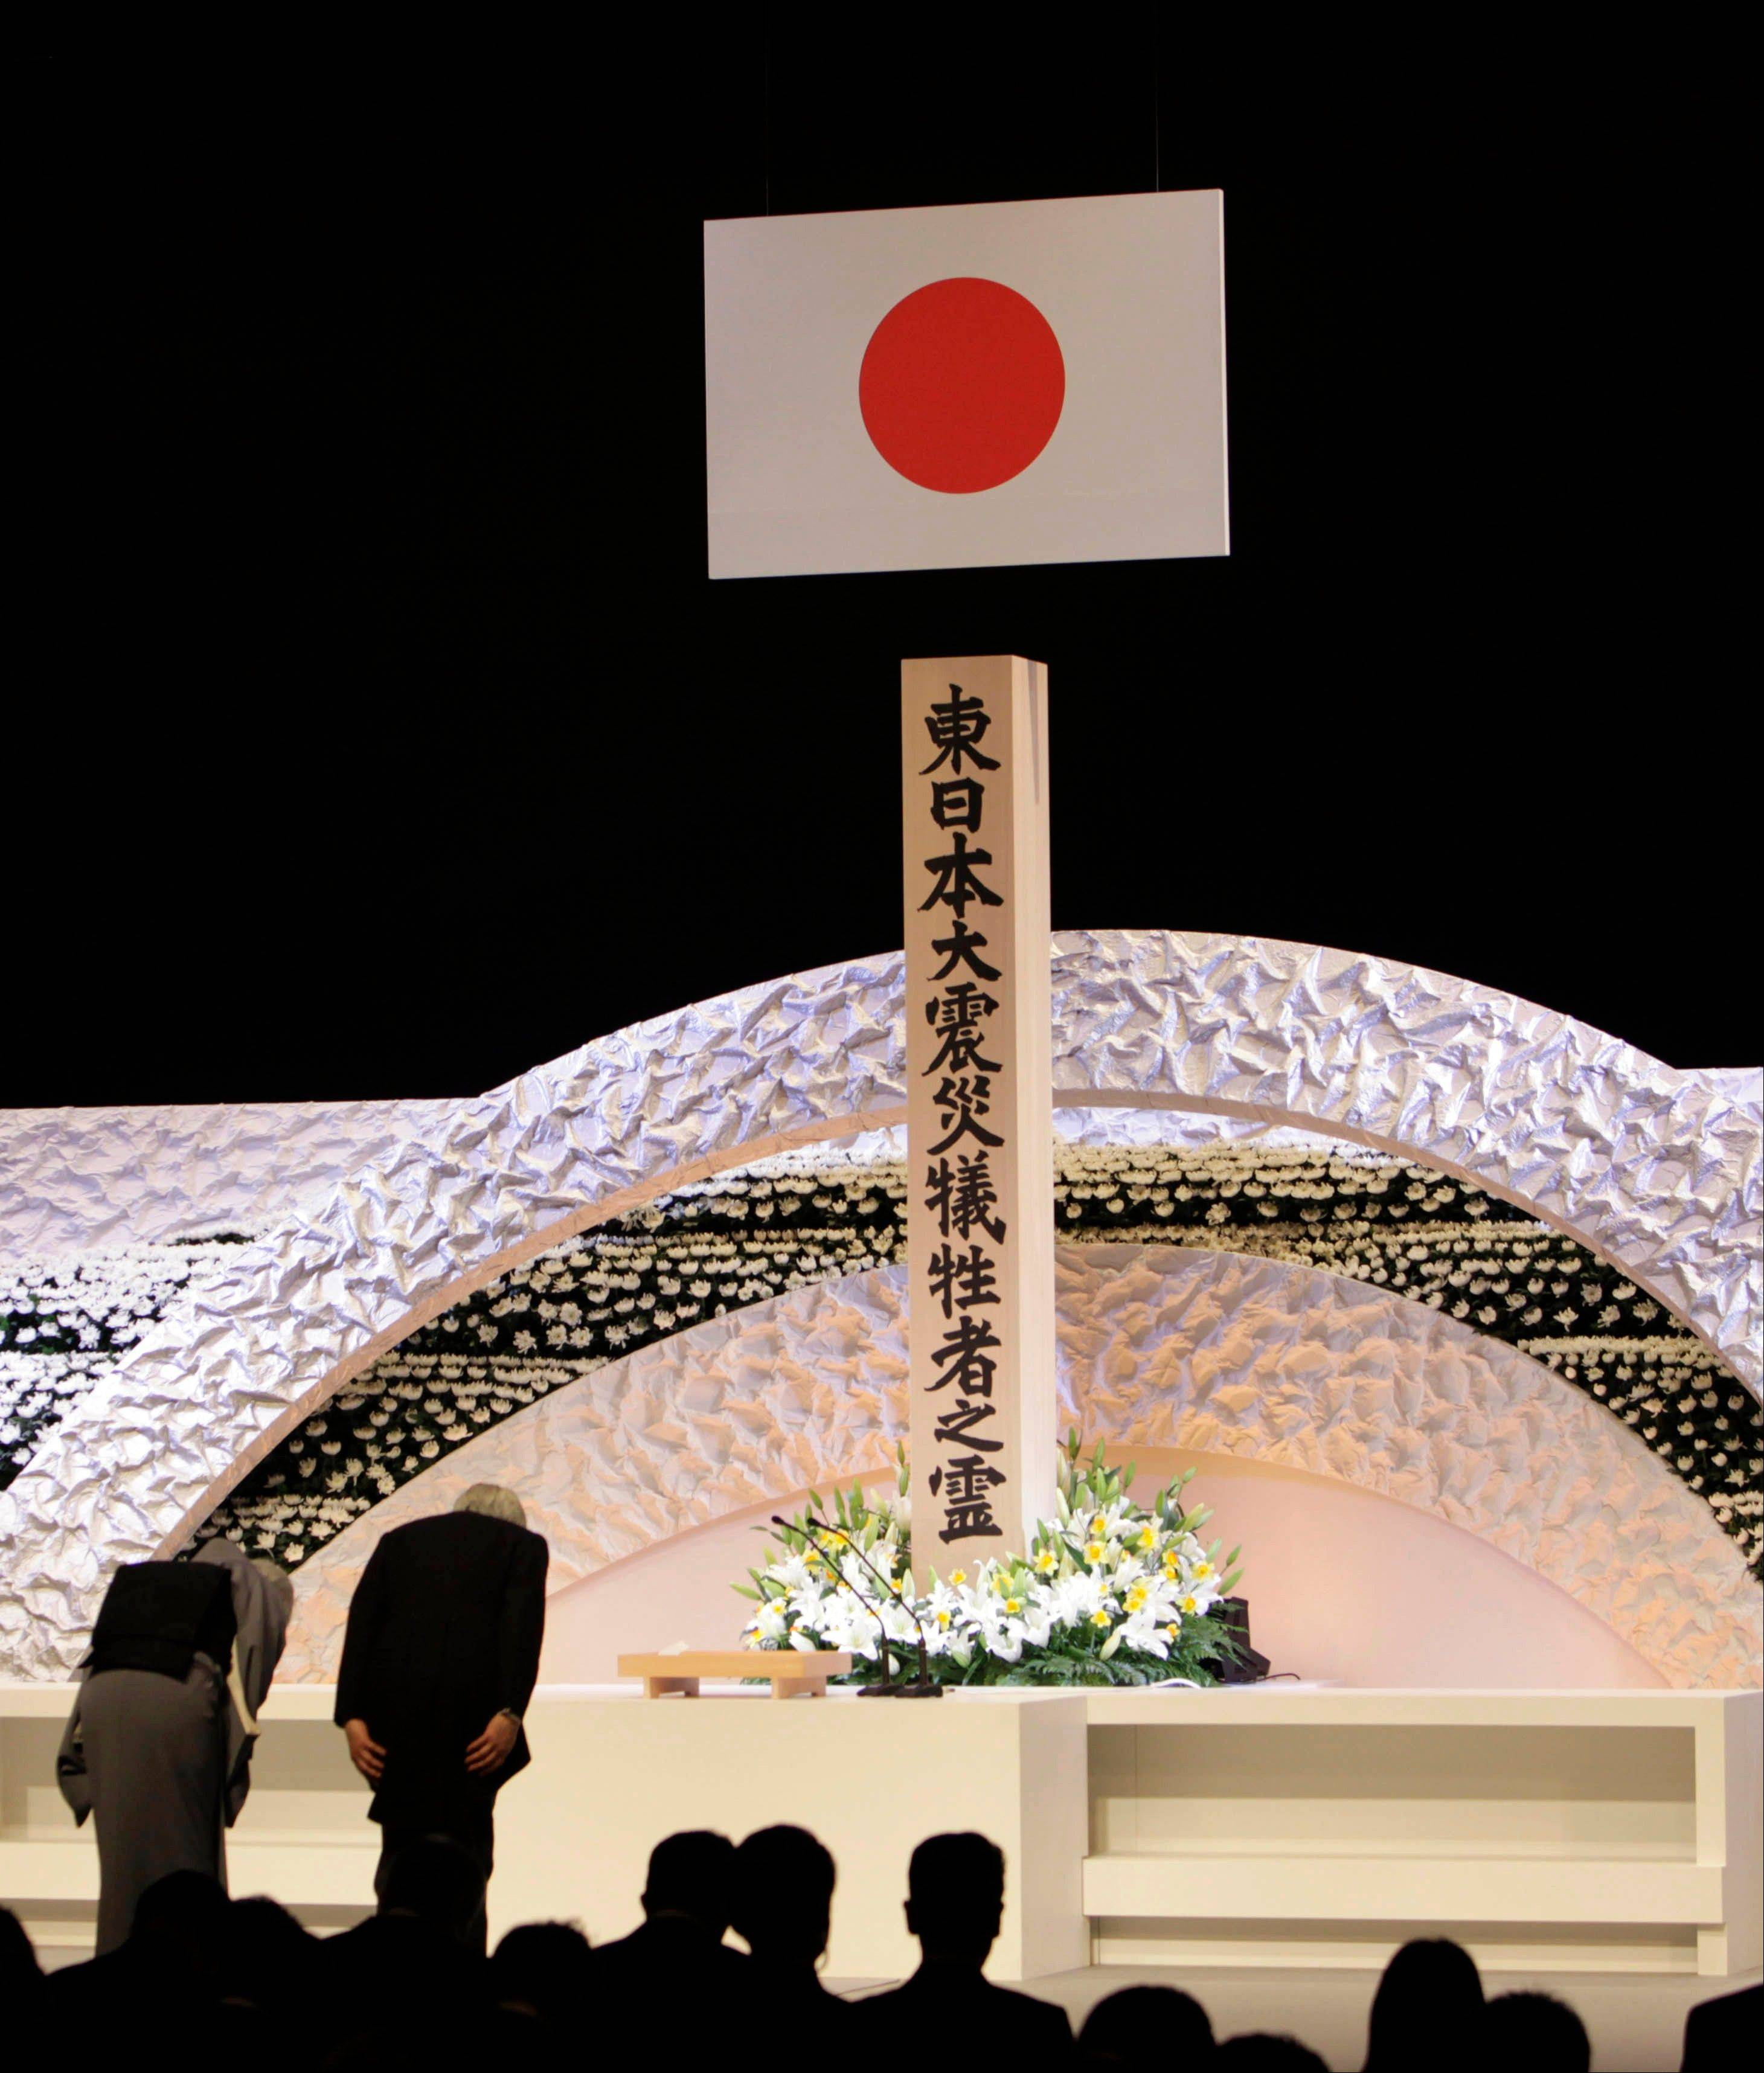 Japanese Emperor Akihito, right, and Empress Michiko bow to pay tribute to the victims of the March 11 earthquake and tsunami at the national memorial service in Tokyo, Monday, March 11, 2013. Japan marked the second anniversary on Monday of the devastating earthquake and tsunami that left nearly 19,000 people dead or missing and more than 300,000 people still displaced.